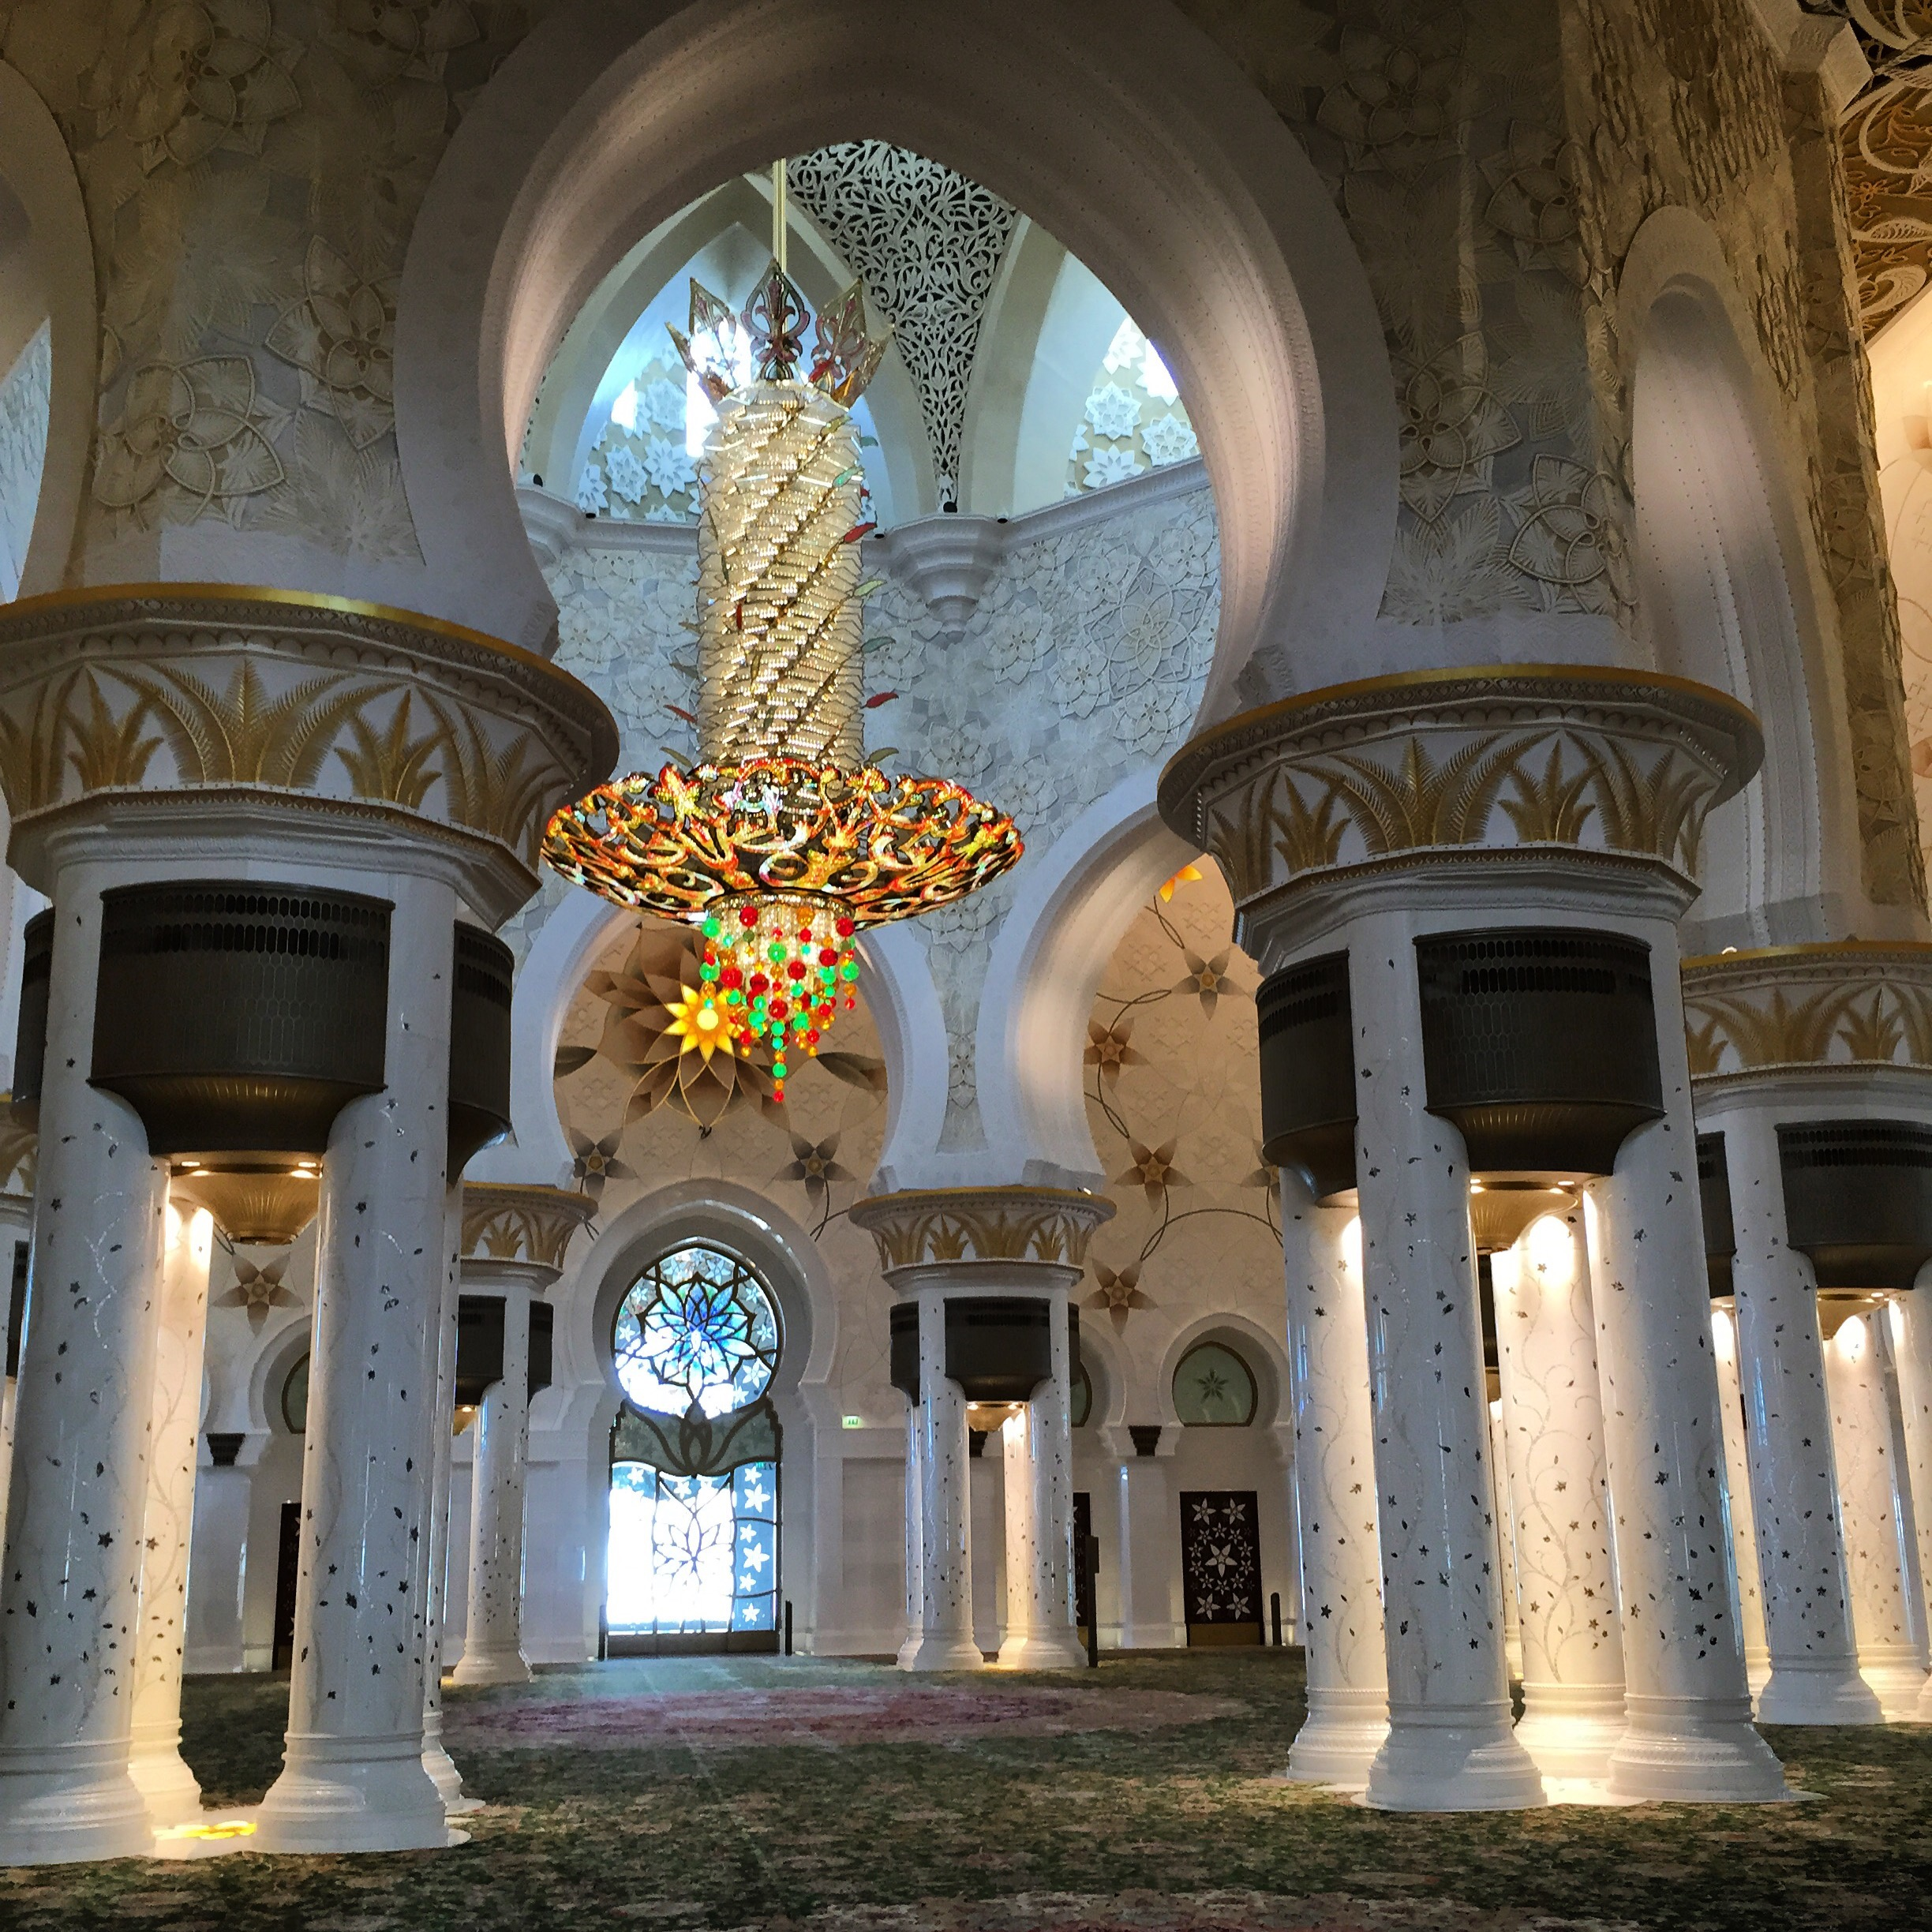 Interior of Sheikh Zayed Grand Mosque (Arabic: جامع الشيخ زايد الكبير‎) in Abu Dhabi